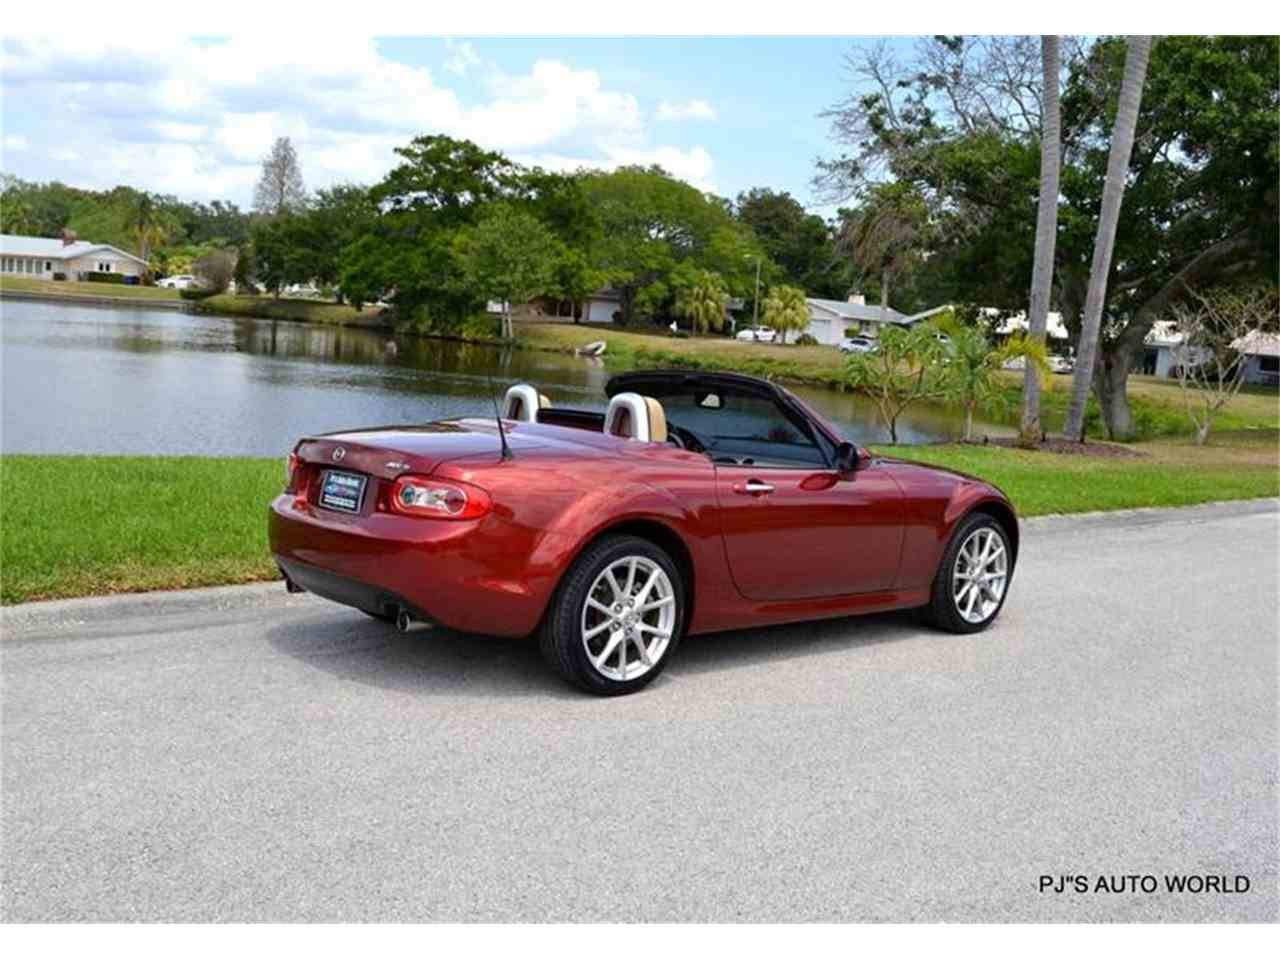 Large Picture of 2012 Miata located in Florida - $16,600.00 Offered by PJ's Auto World - L6IJ